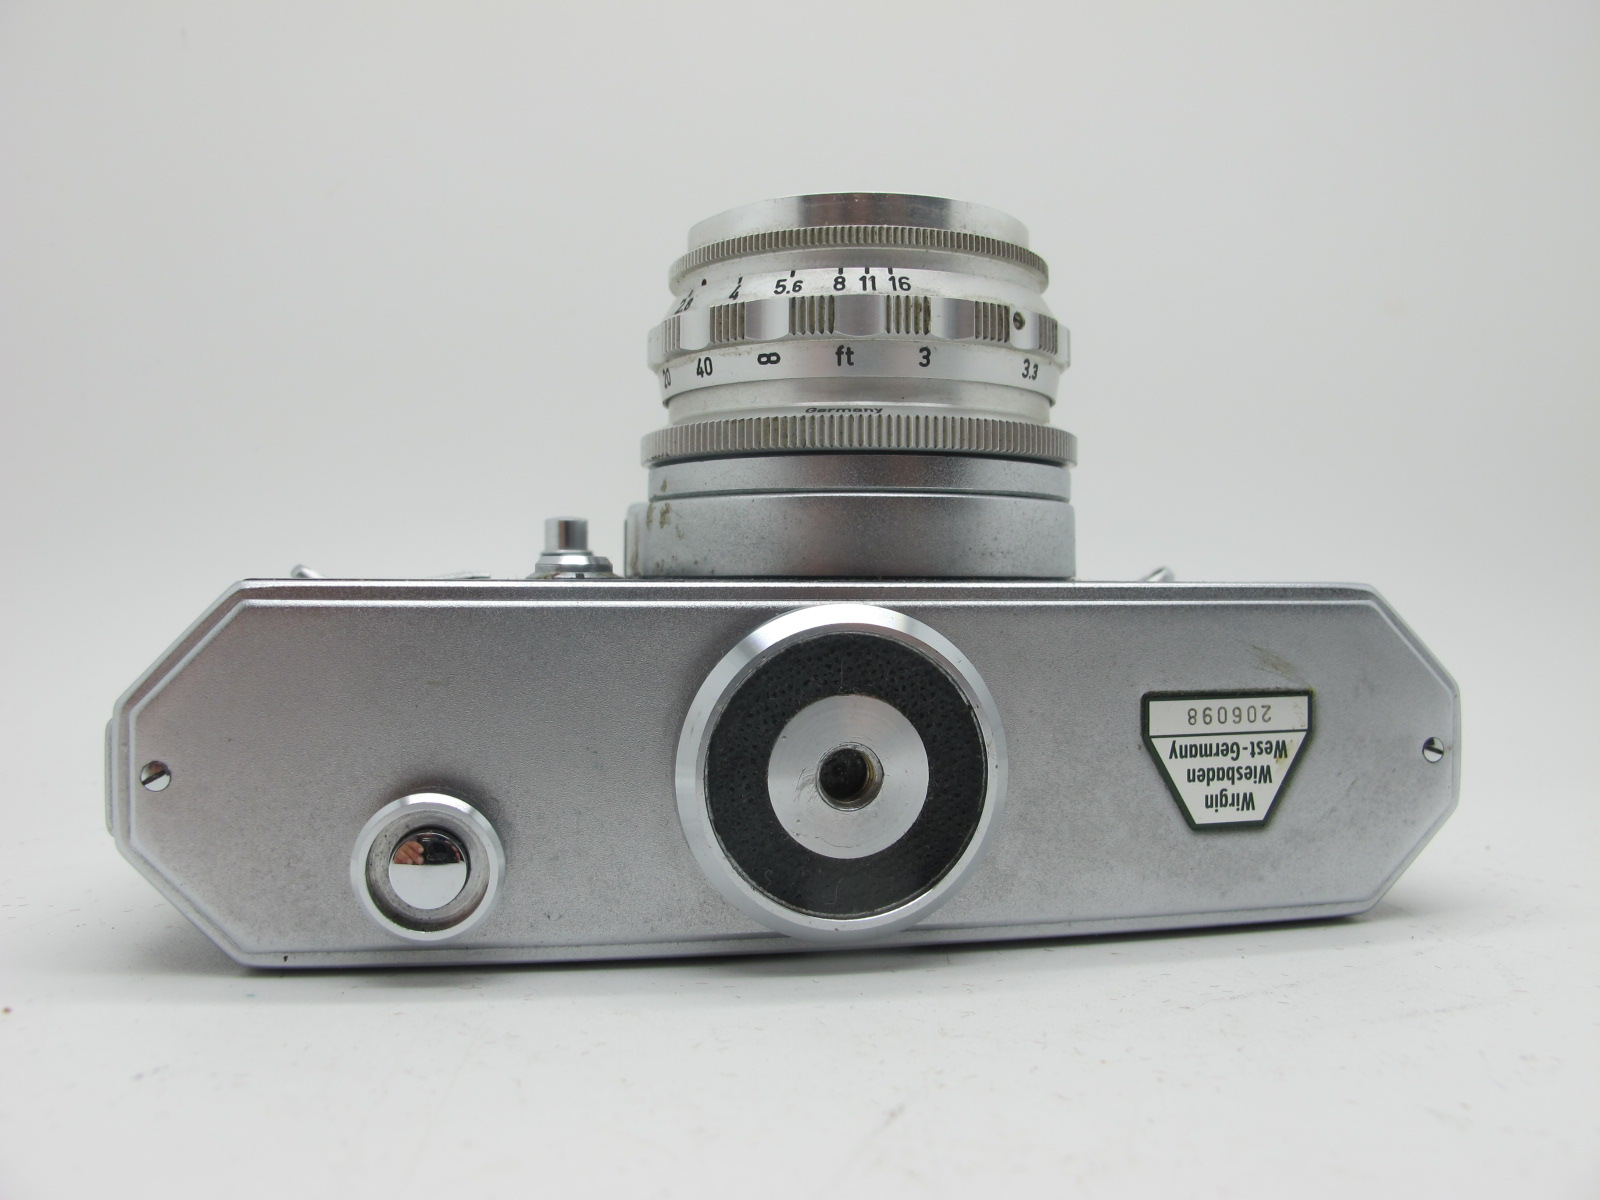 Saraber Goslar Finetta 88, Edika Flex, plus two other camera's in brown leather cases. (4) - Image 7 of 13